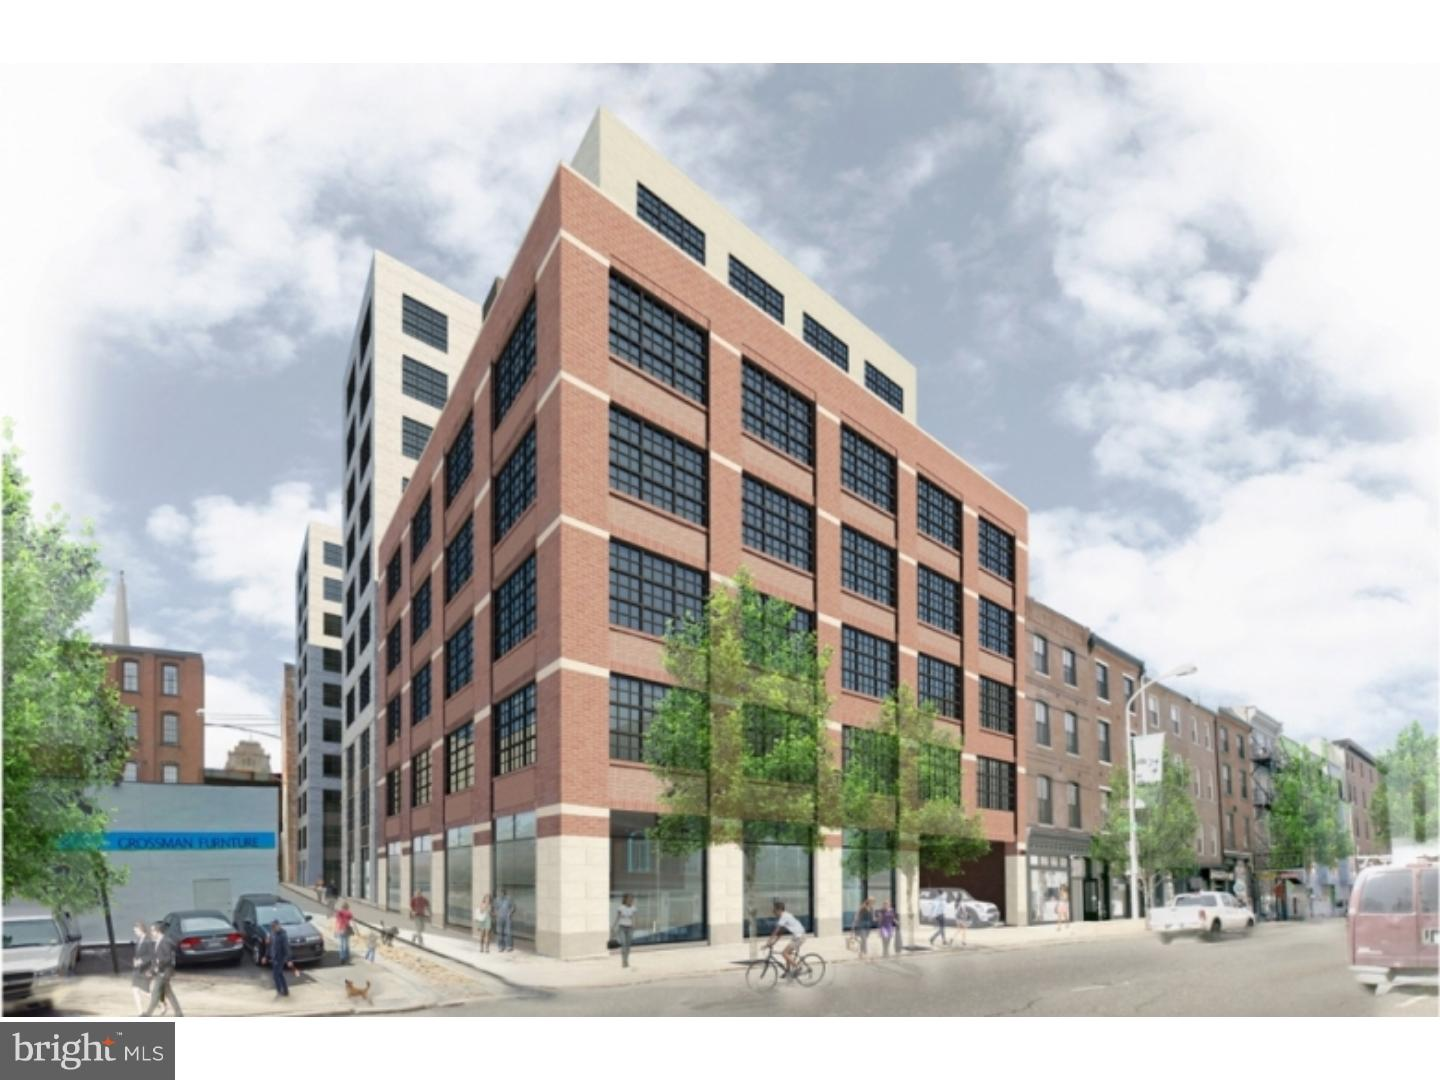 ONE MONTH FREE on a 13 month lease, and WAIVED APPLICATION fees for a limited time! Live in GREAT space, and FANTASTIC value in the heart OLD CITY, at 218 ARCH street! This well designed, and perfectly proportioned JR one bedroom has it all. HARDWOOD FLOORS...high ceilings, custom kitchen with GRANITE counter tops, and stainless steel appliances, stylish tile bath, and fantastic closet space! This brand new OLD CITY property, by PMC offers: ROOF top lounge,with glorious views of the BEN FRANKLIN bridge and Center City, PRIVATE resident courtyard, GYM, PELATON room, LOUNGE,with flat screen TVs, billiards, business center, and GARAGE parking for additional fee! ! ! Photo's are of model unit.